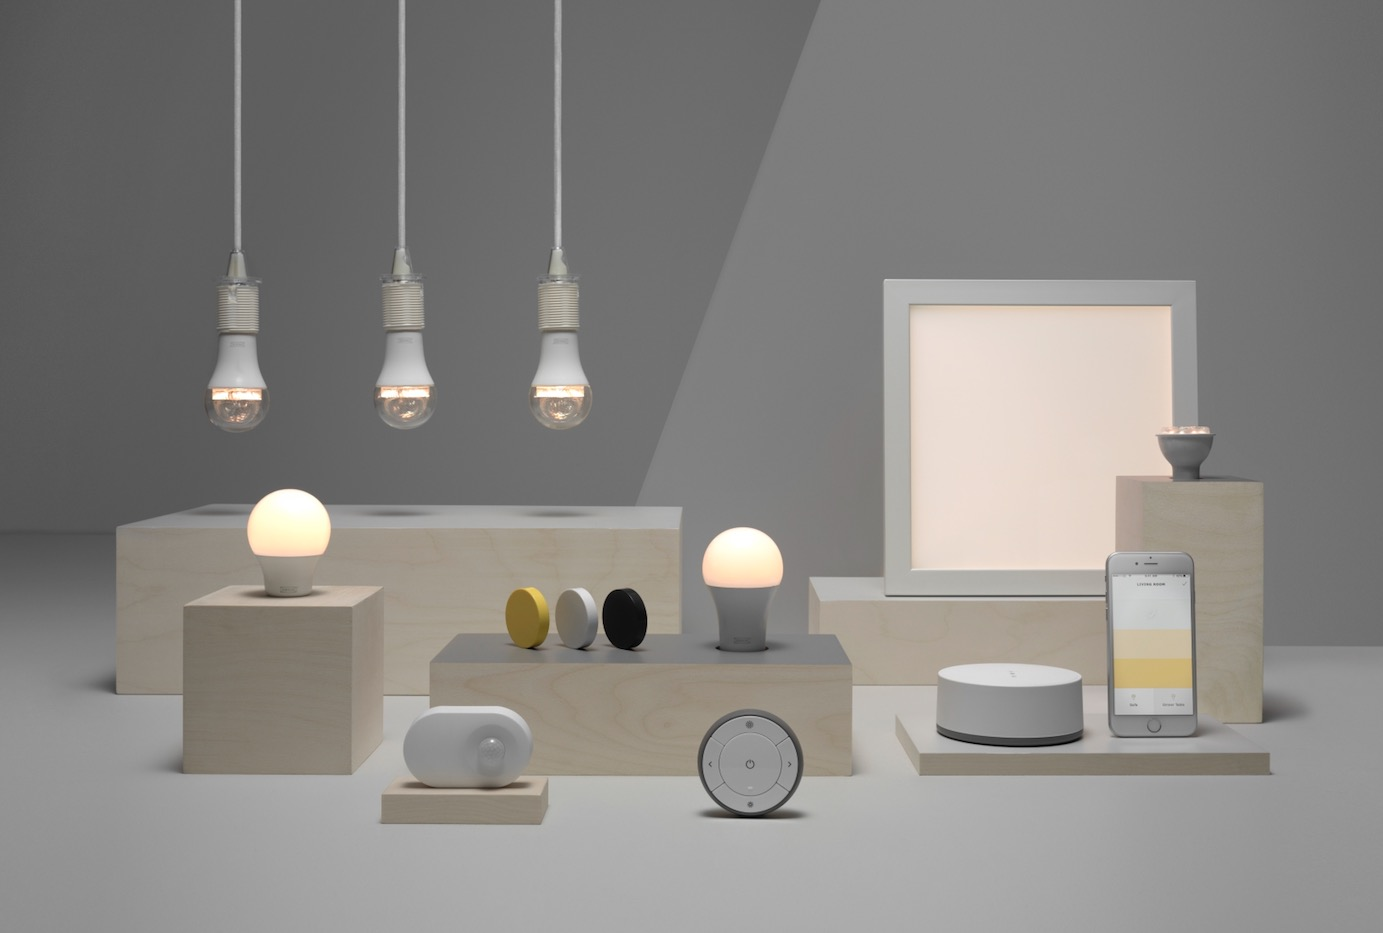 ikea 39 s tr dfri smart lighting will soon work with google. Black Bedroom Furniture Sets. Home Design Ideas